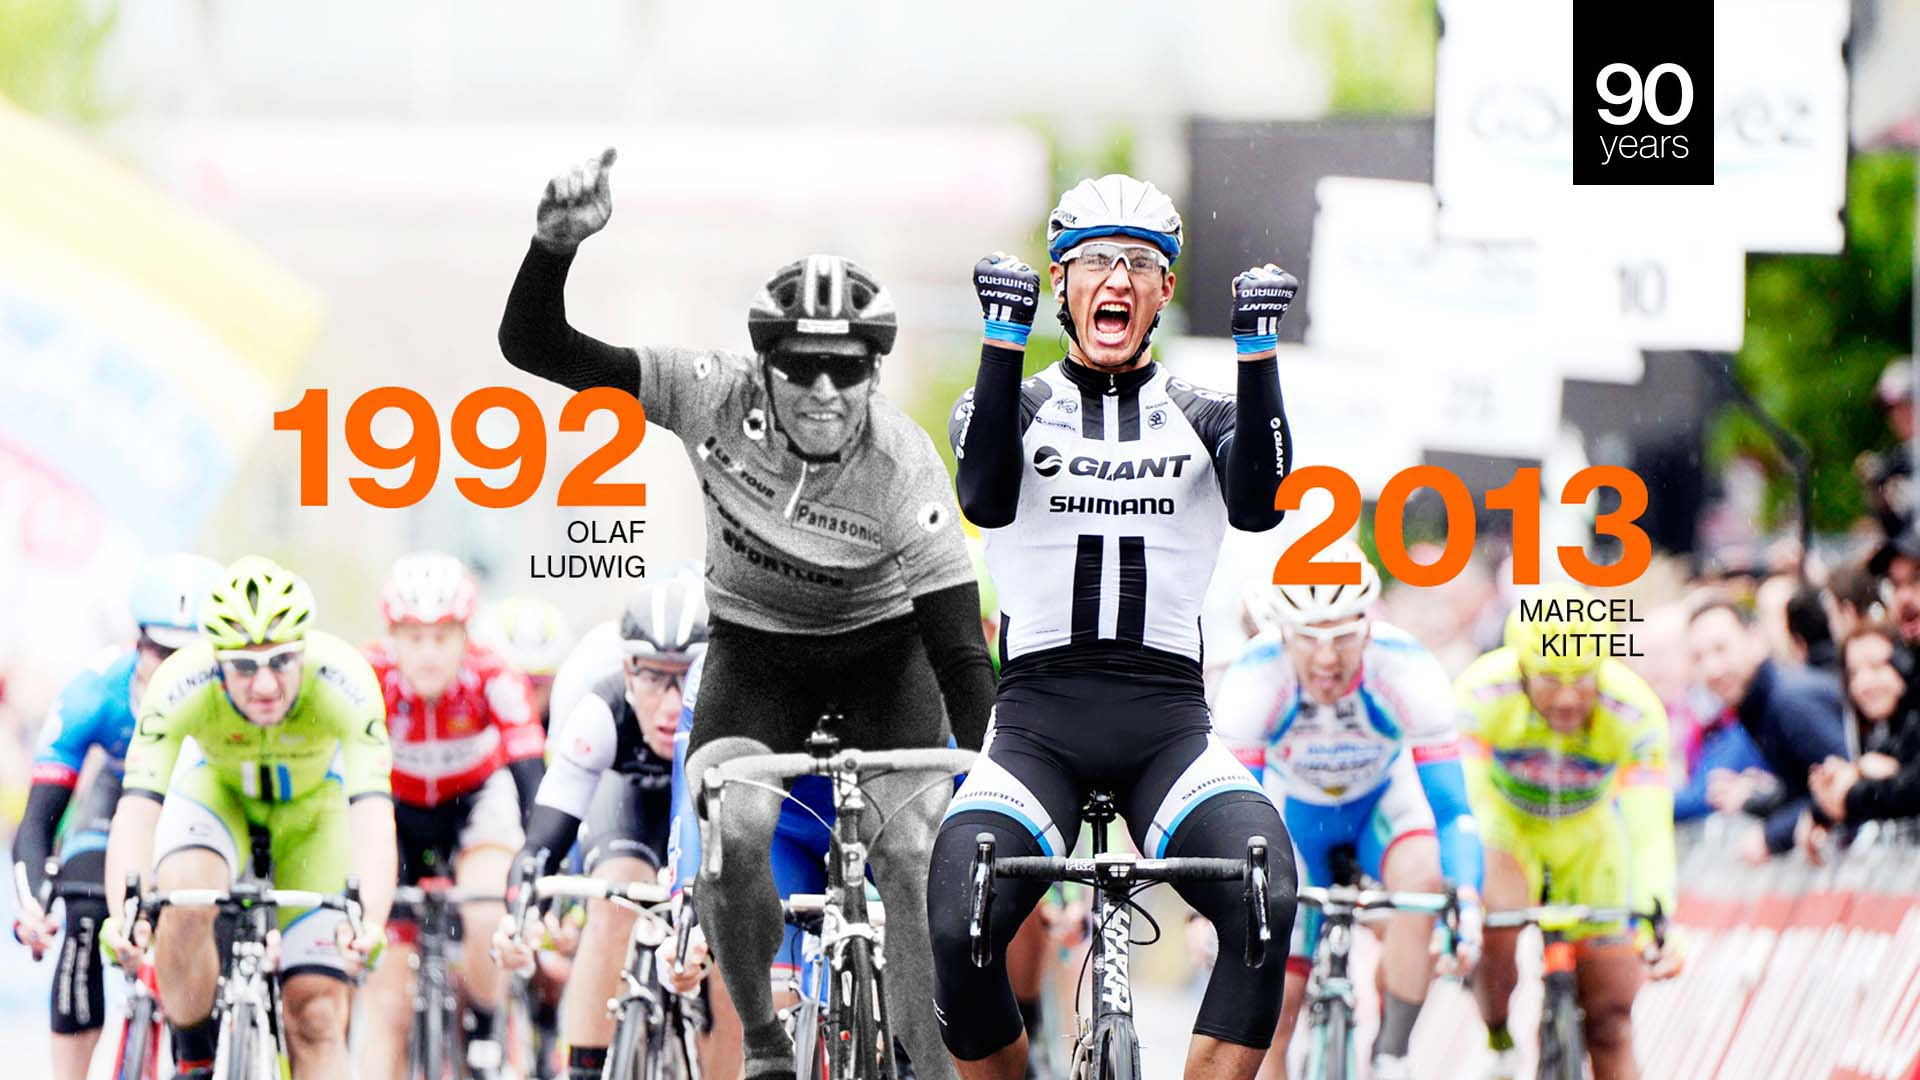 uvex history cycling - 90 years